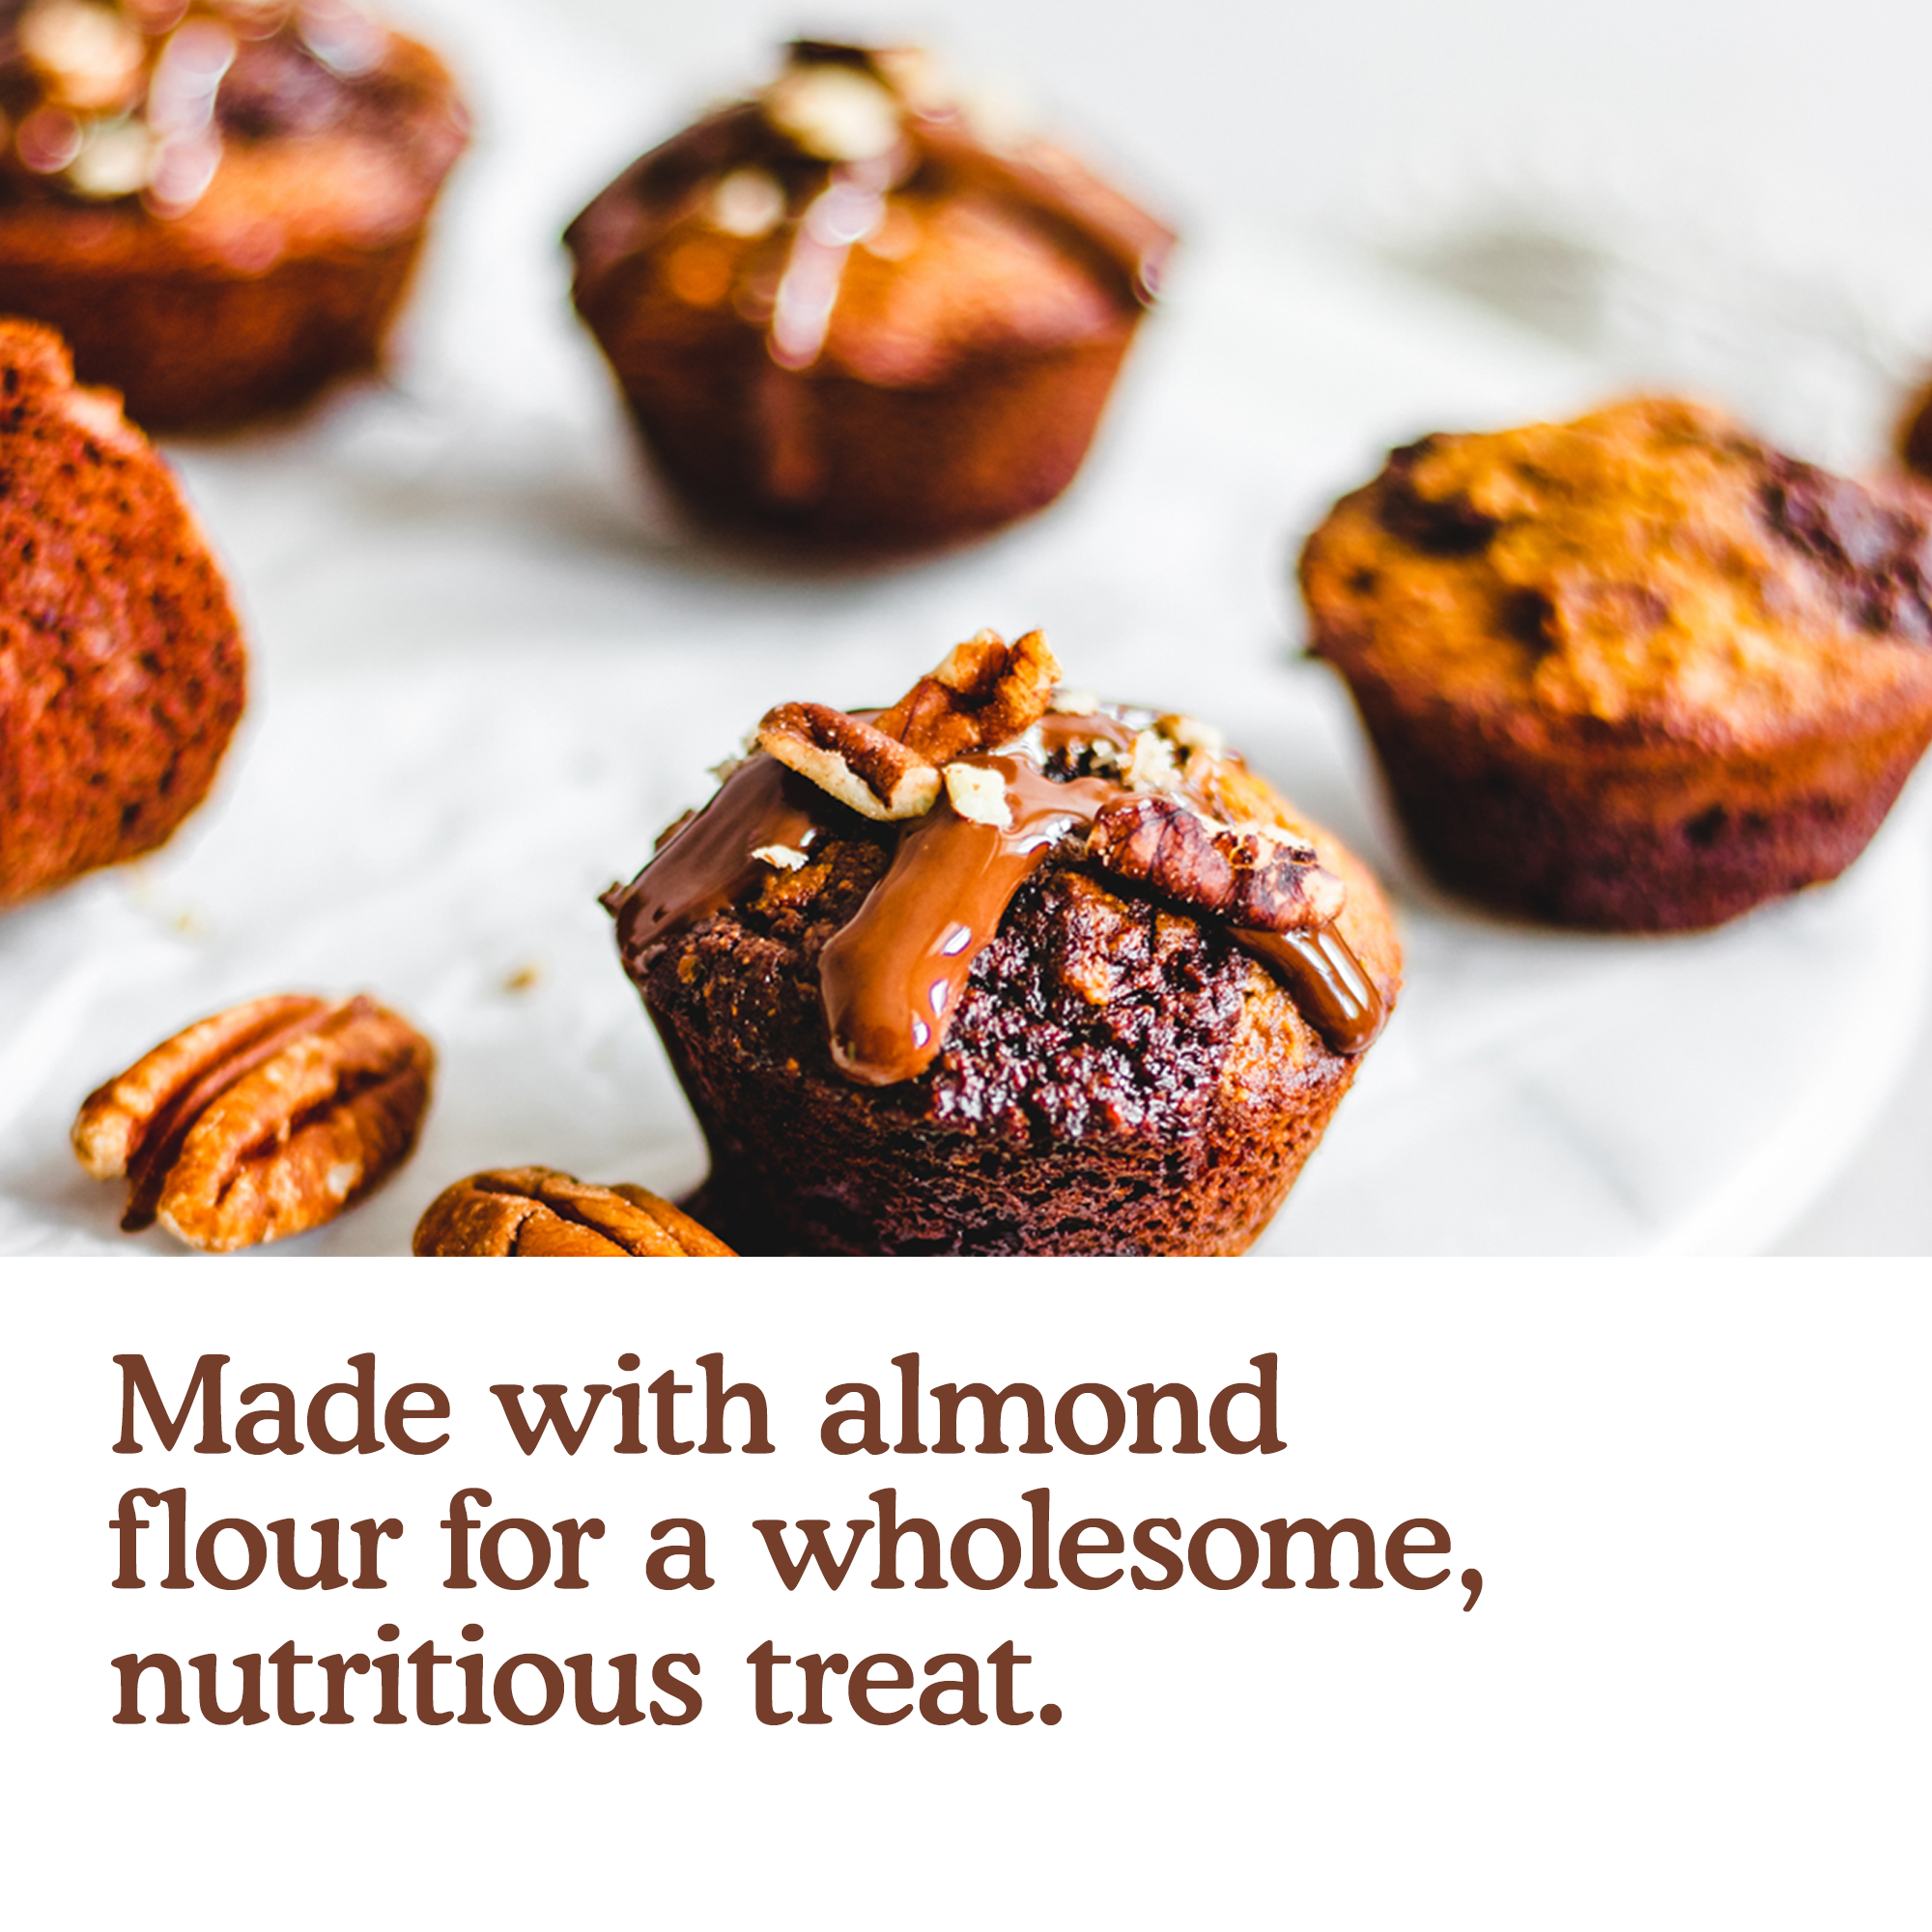 Made with almond flour for a wholesome nutritious treat.